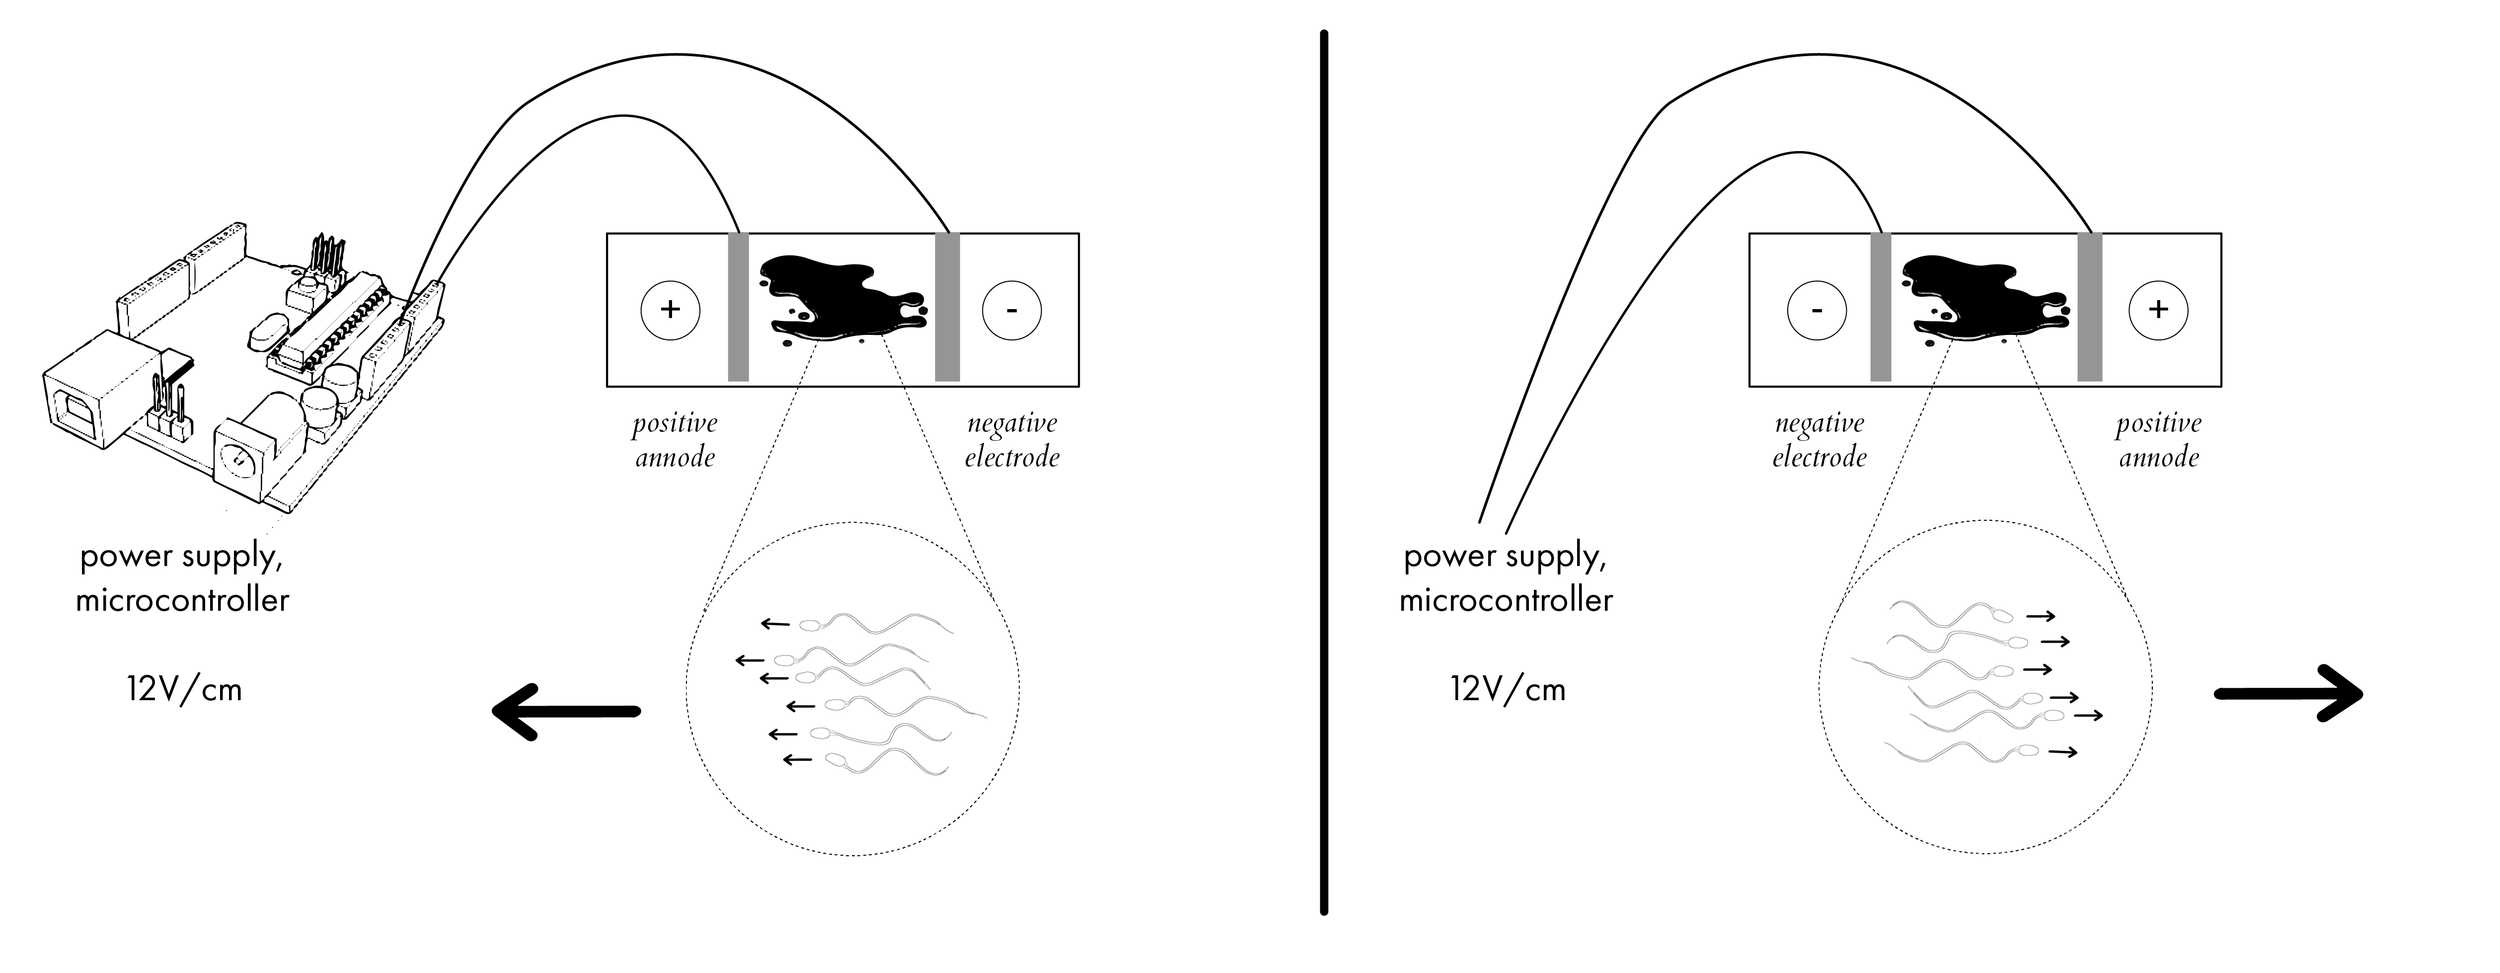 Diagram to show electrophoretic effect on sperm. Sperm will move towards the negatively charged cathode at 12V/ cm.